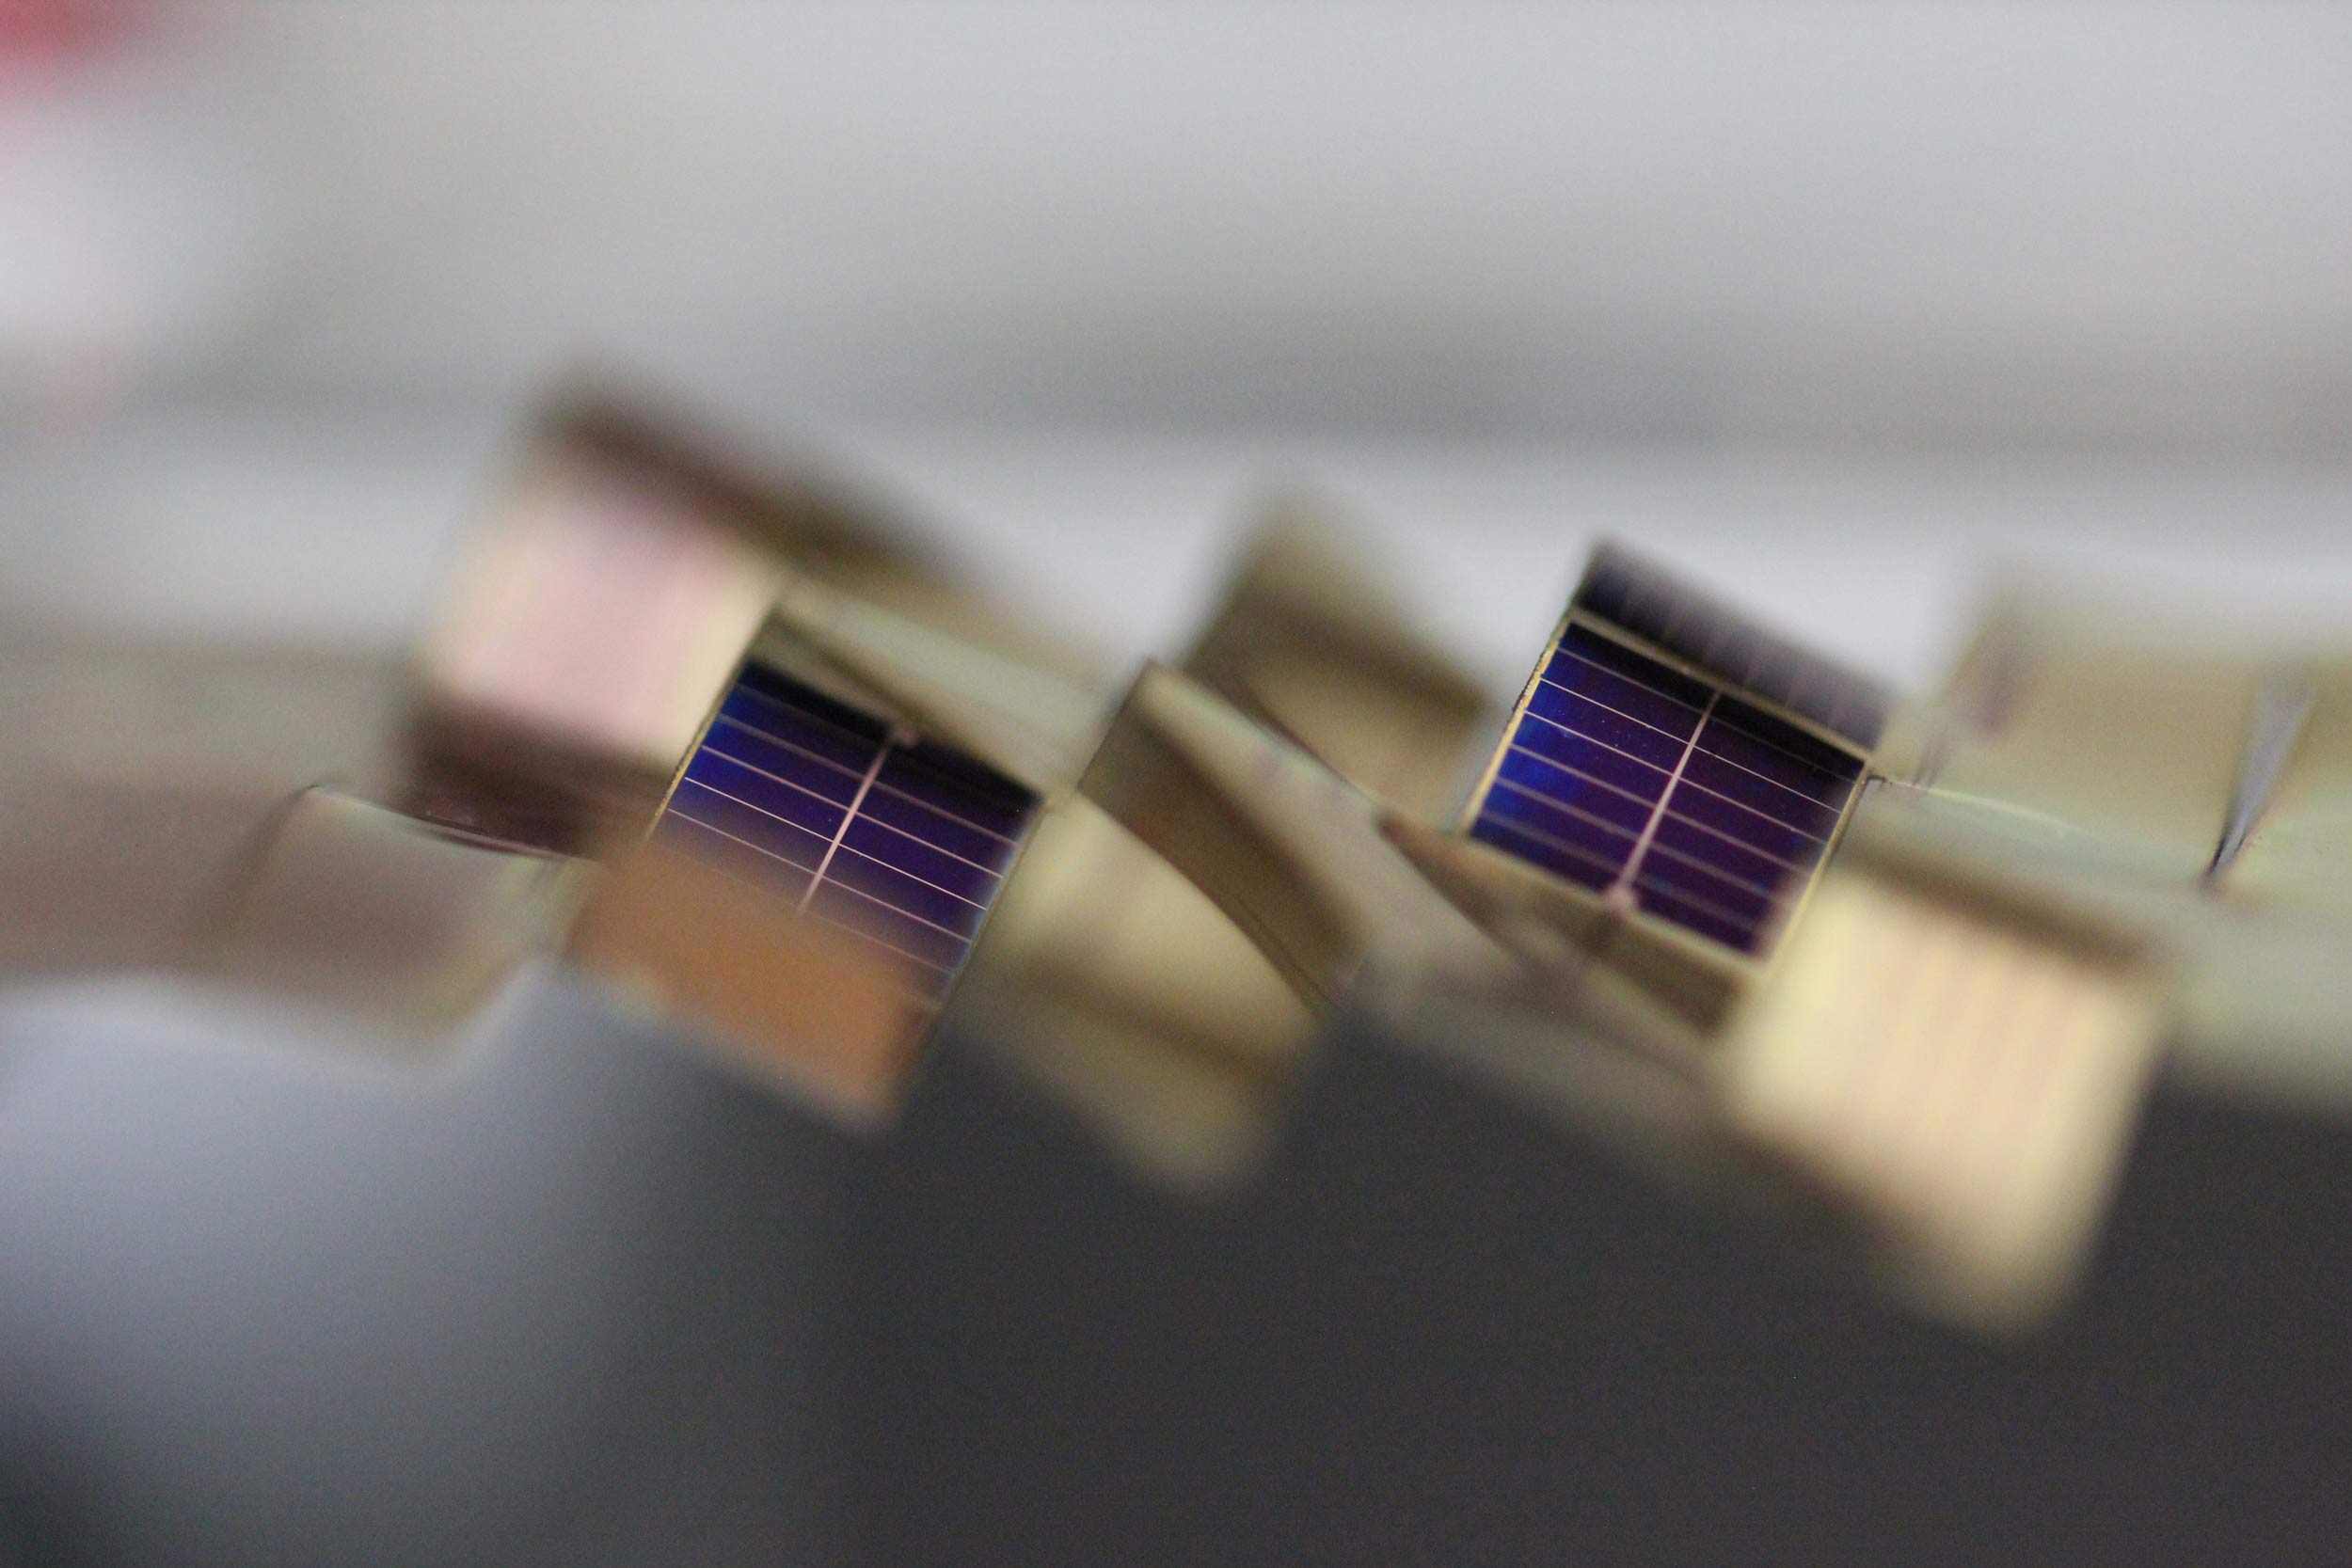 A second view of the solar cells. Image credit: Aaron Lamoureux